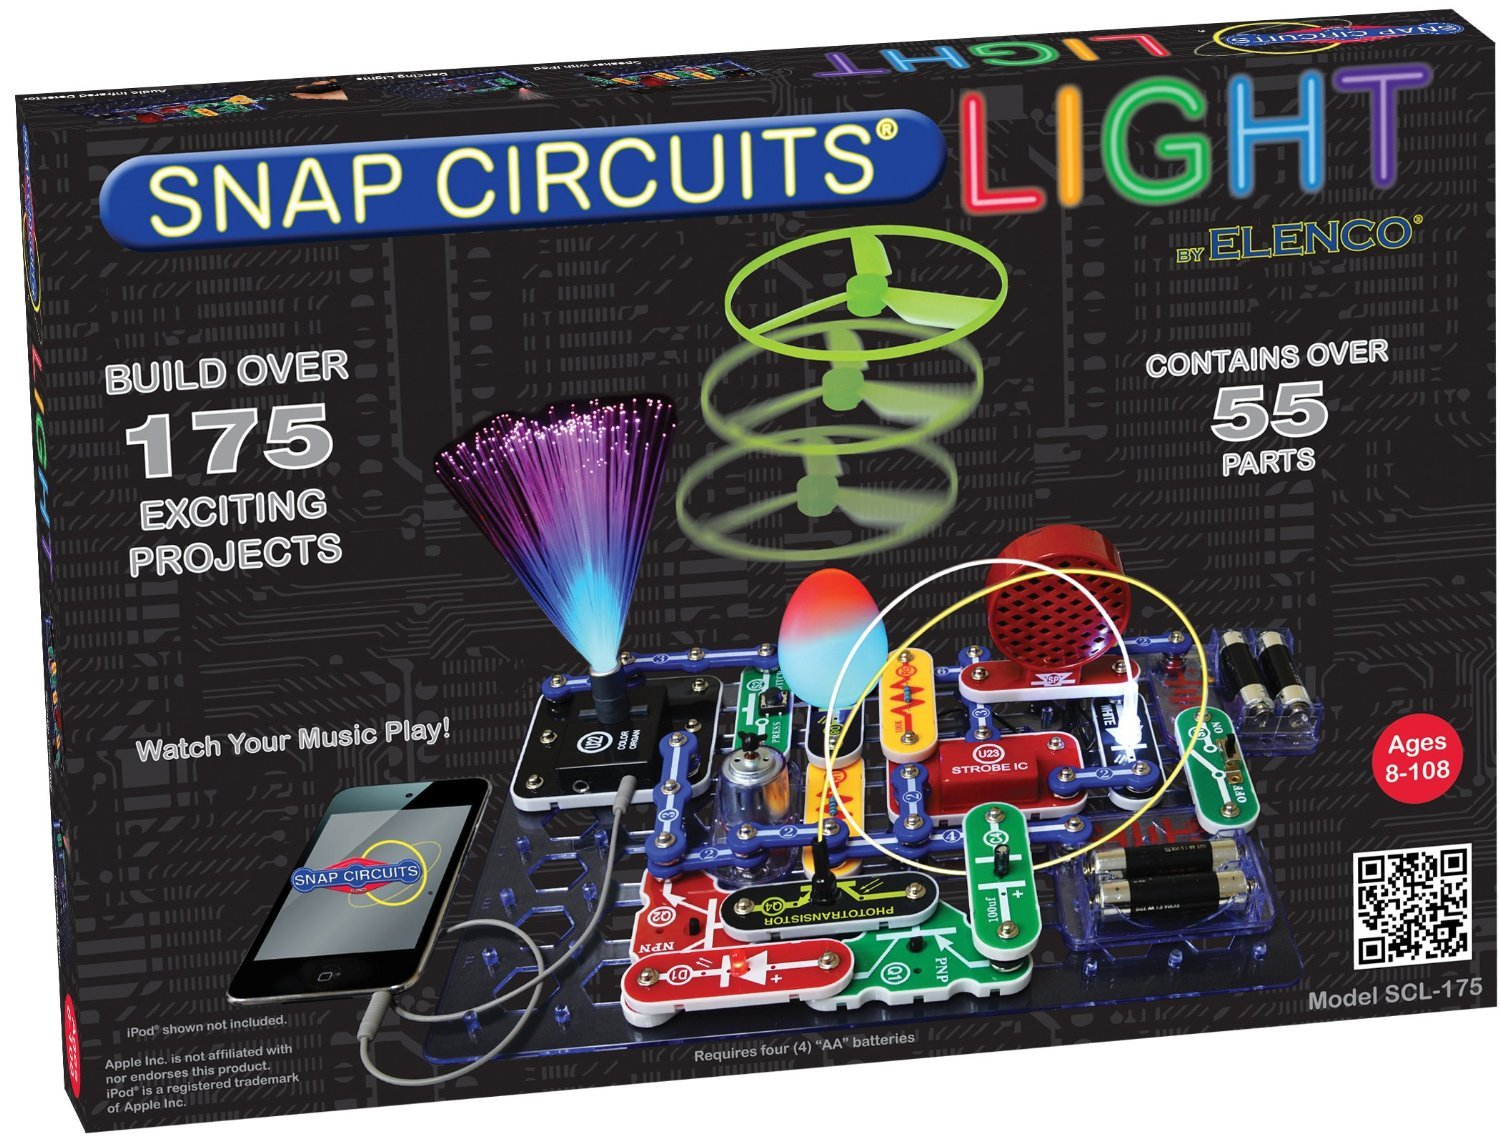 Best Electronic Set For Kids Basic Electronics Toys Snap Circuits Jr Sc 100 Elenco Scl 175b Lights Discovery Kit